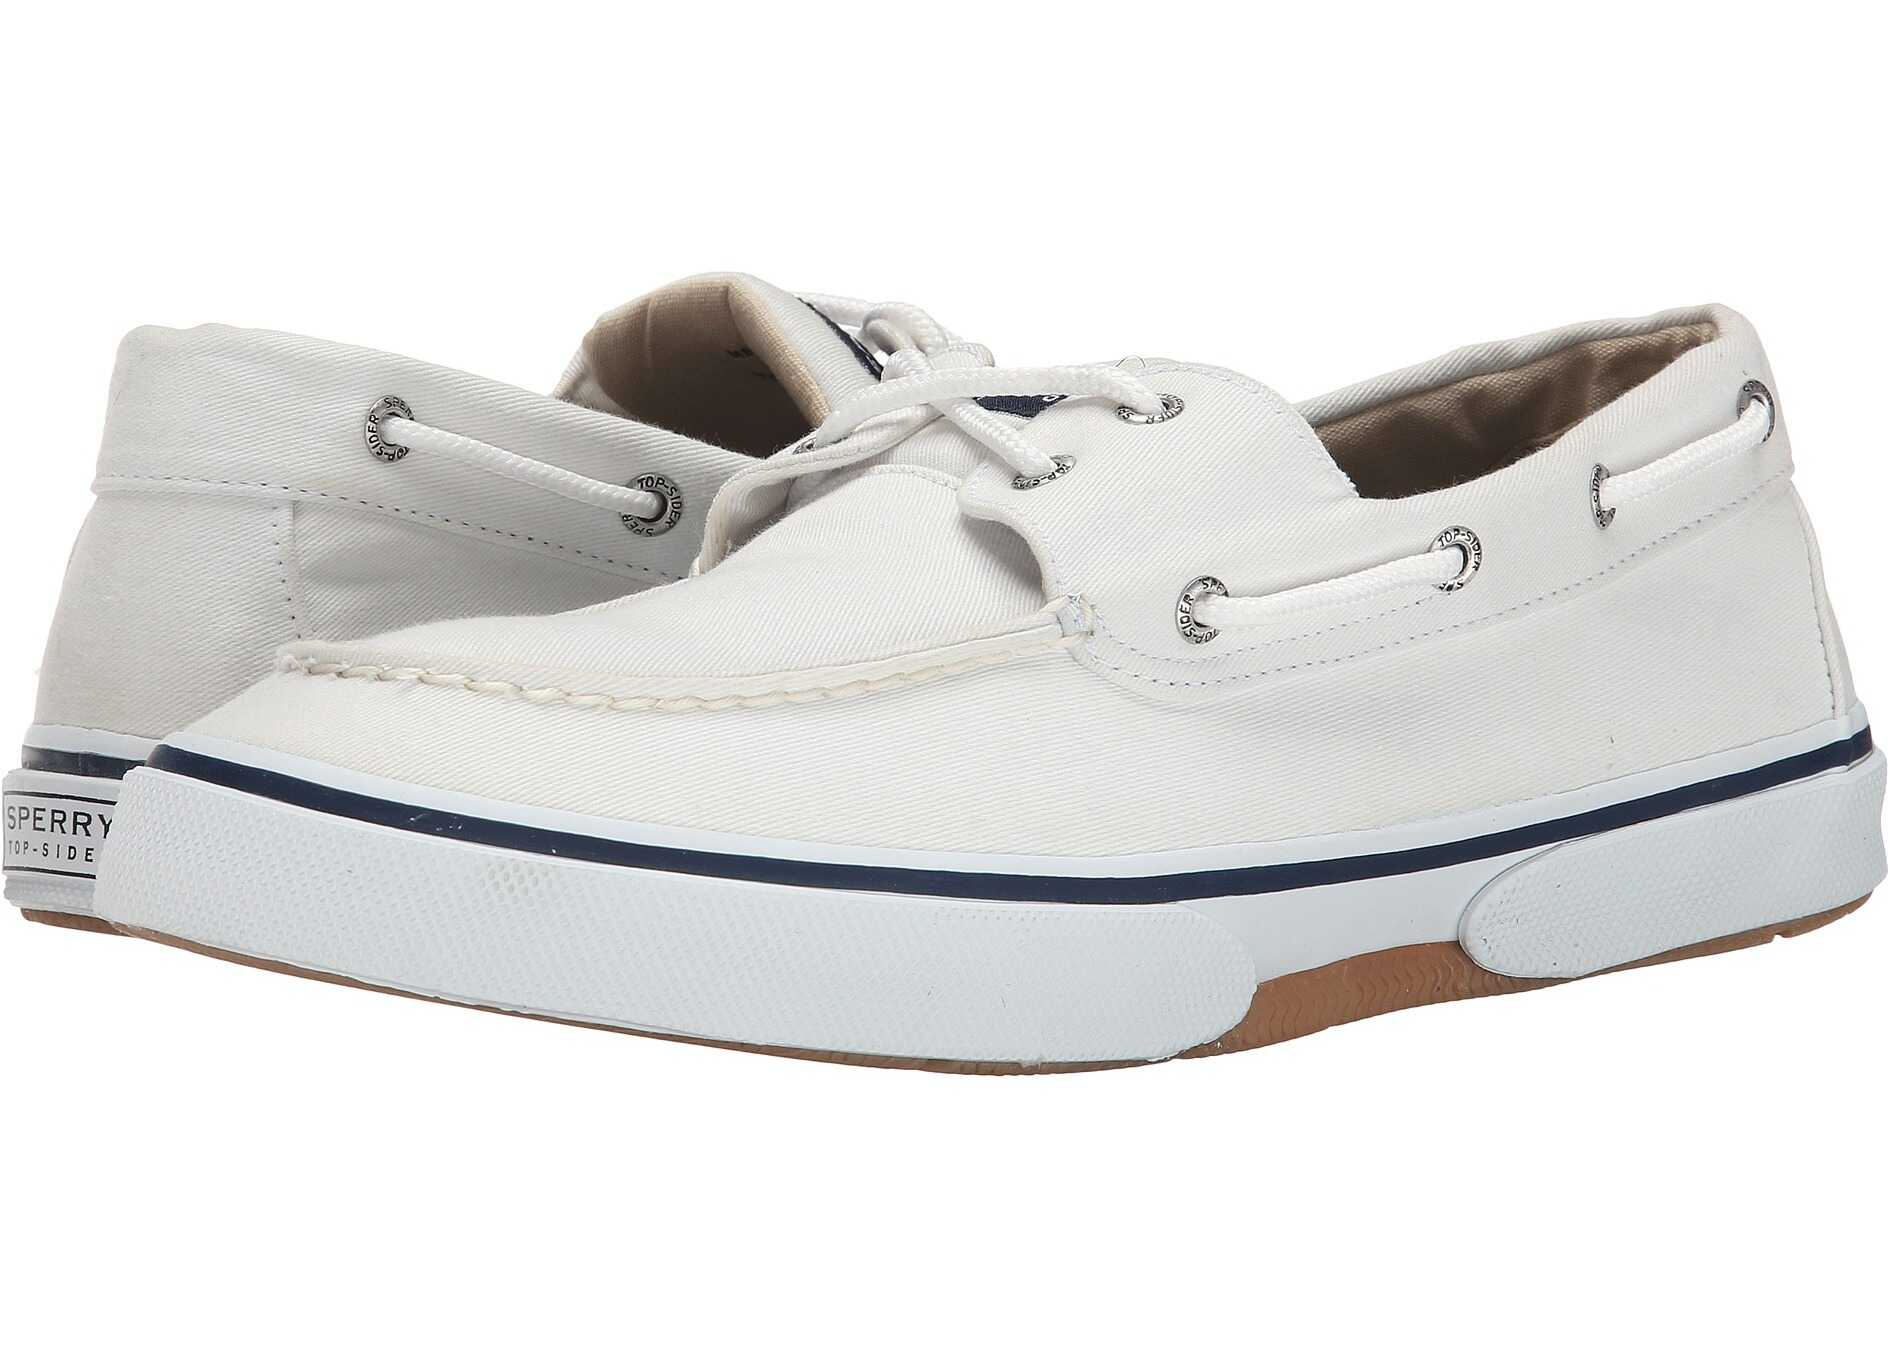 Sperry top sider coupons 2018